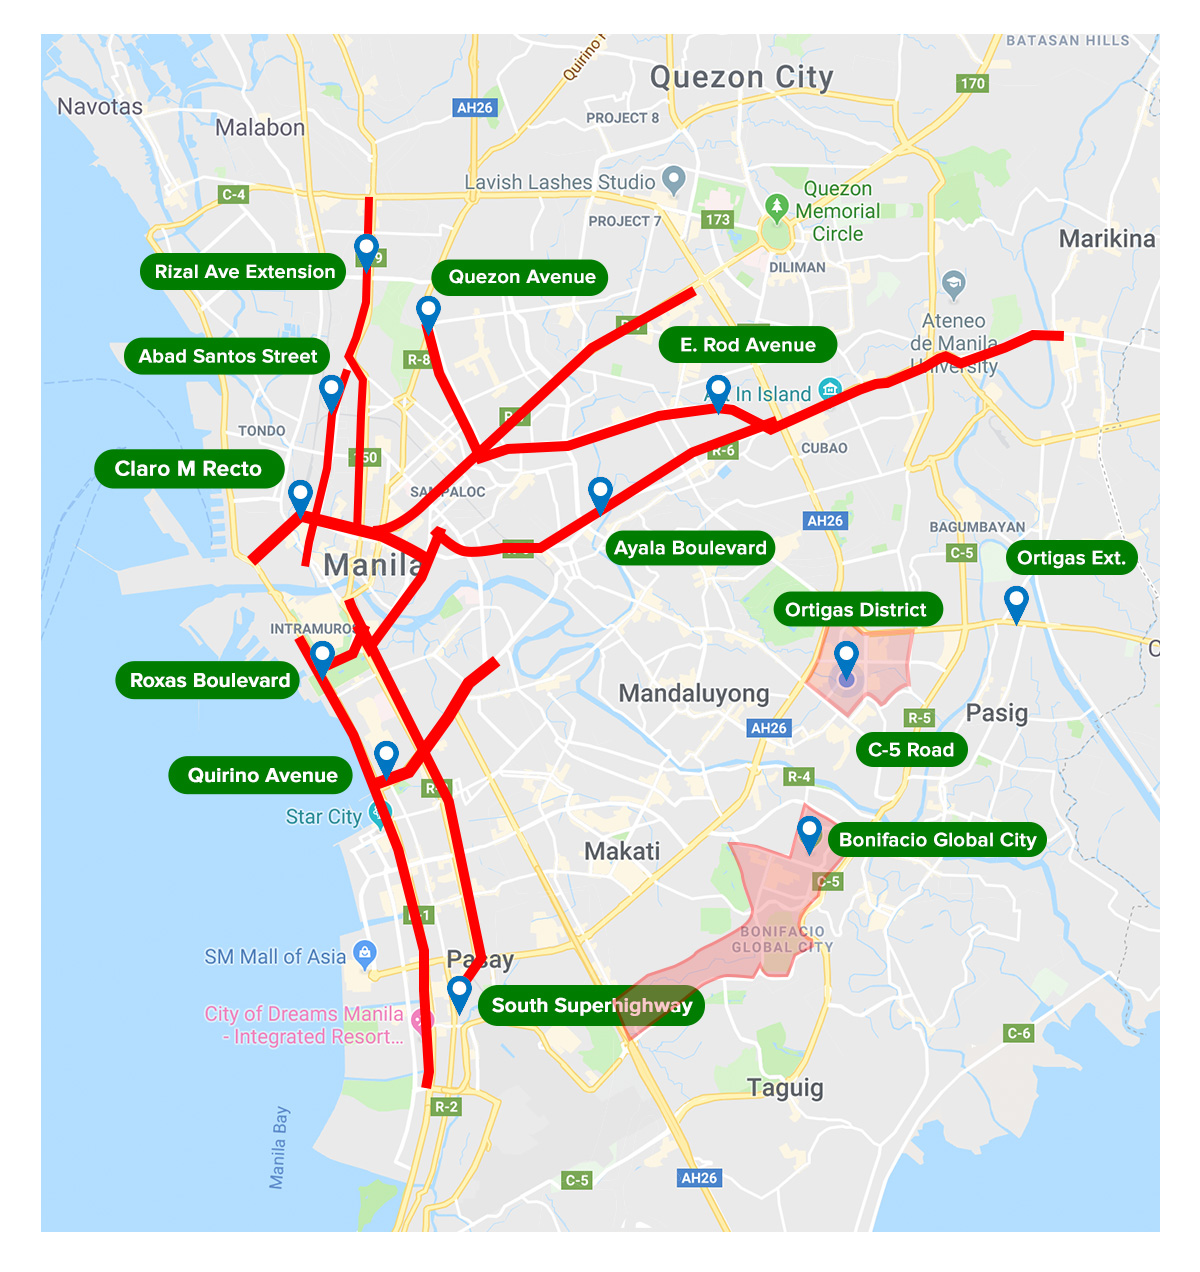 Metro Manila Truck Road Restrictions